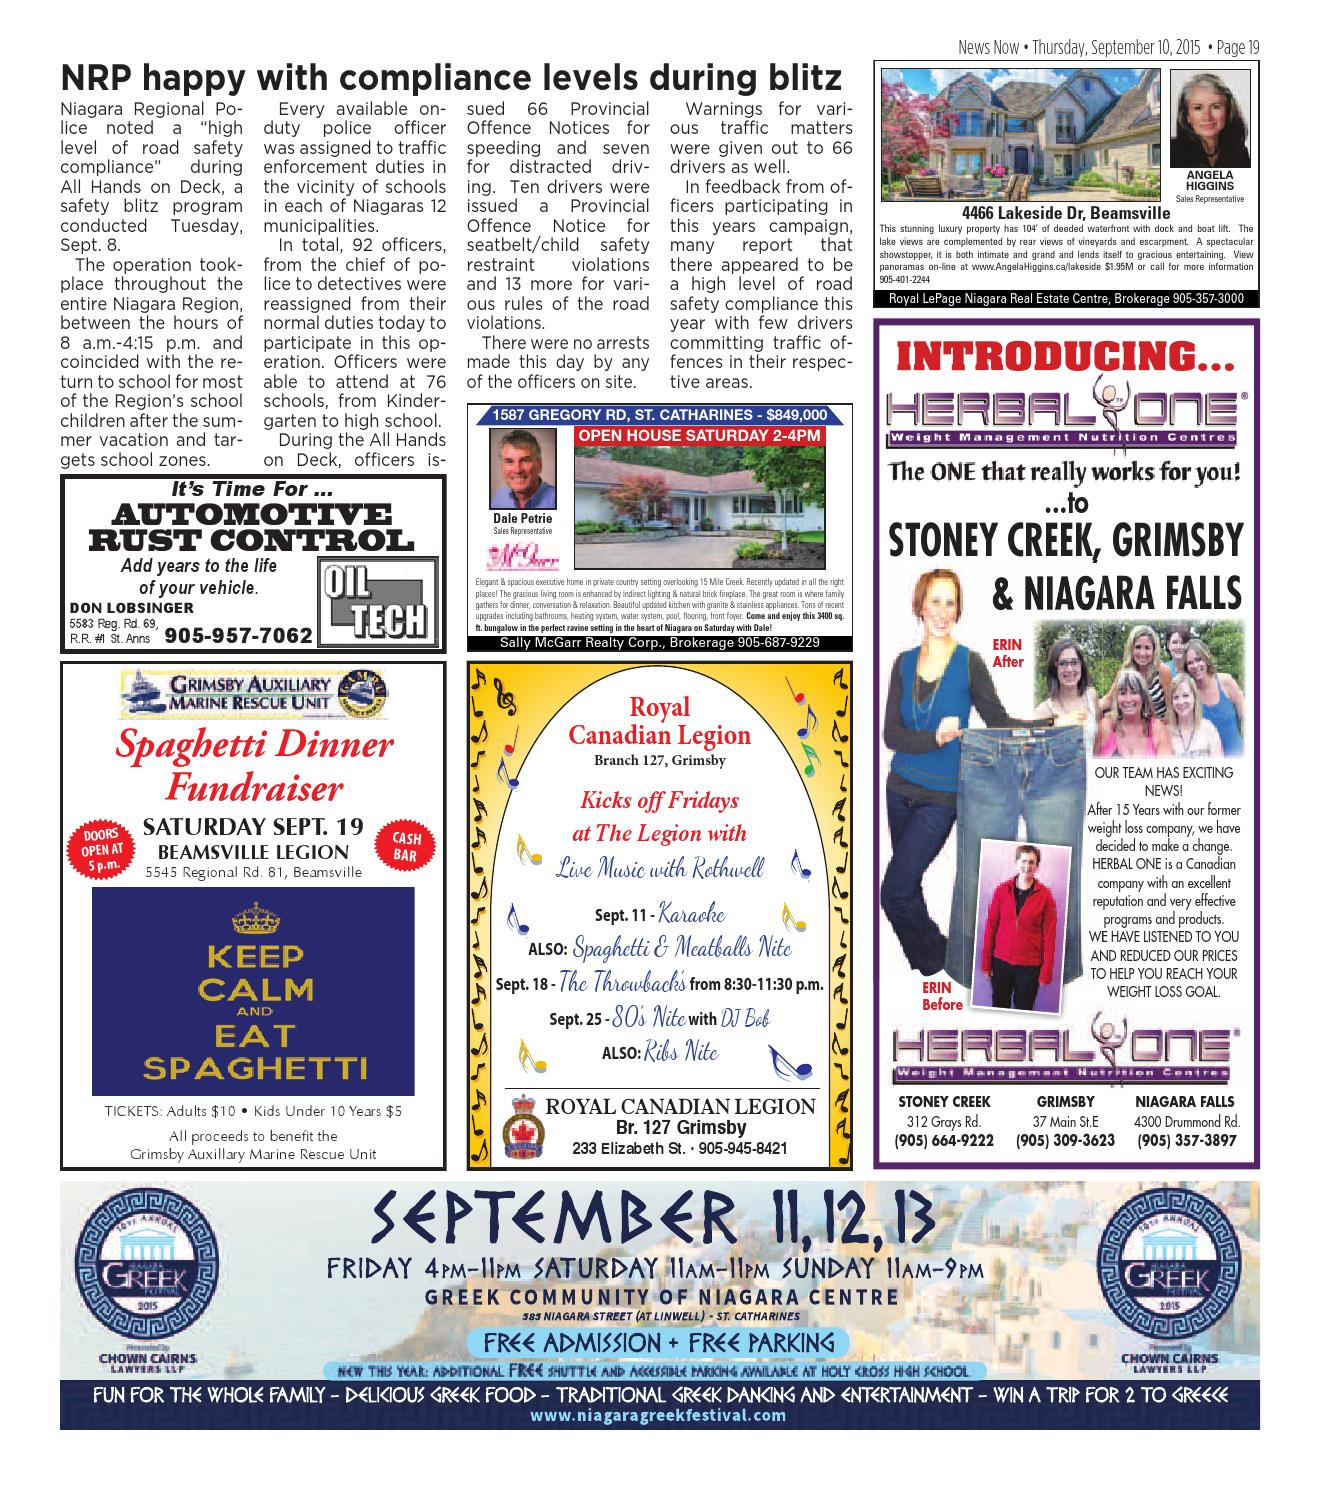 newsnow Niagara e-edition September 10 2015 by newsnow Niagara - issuu